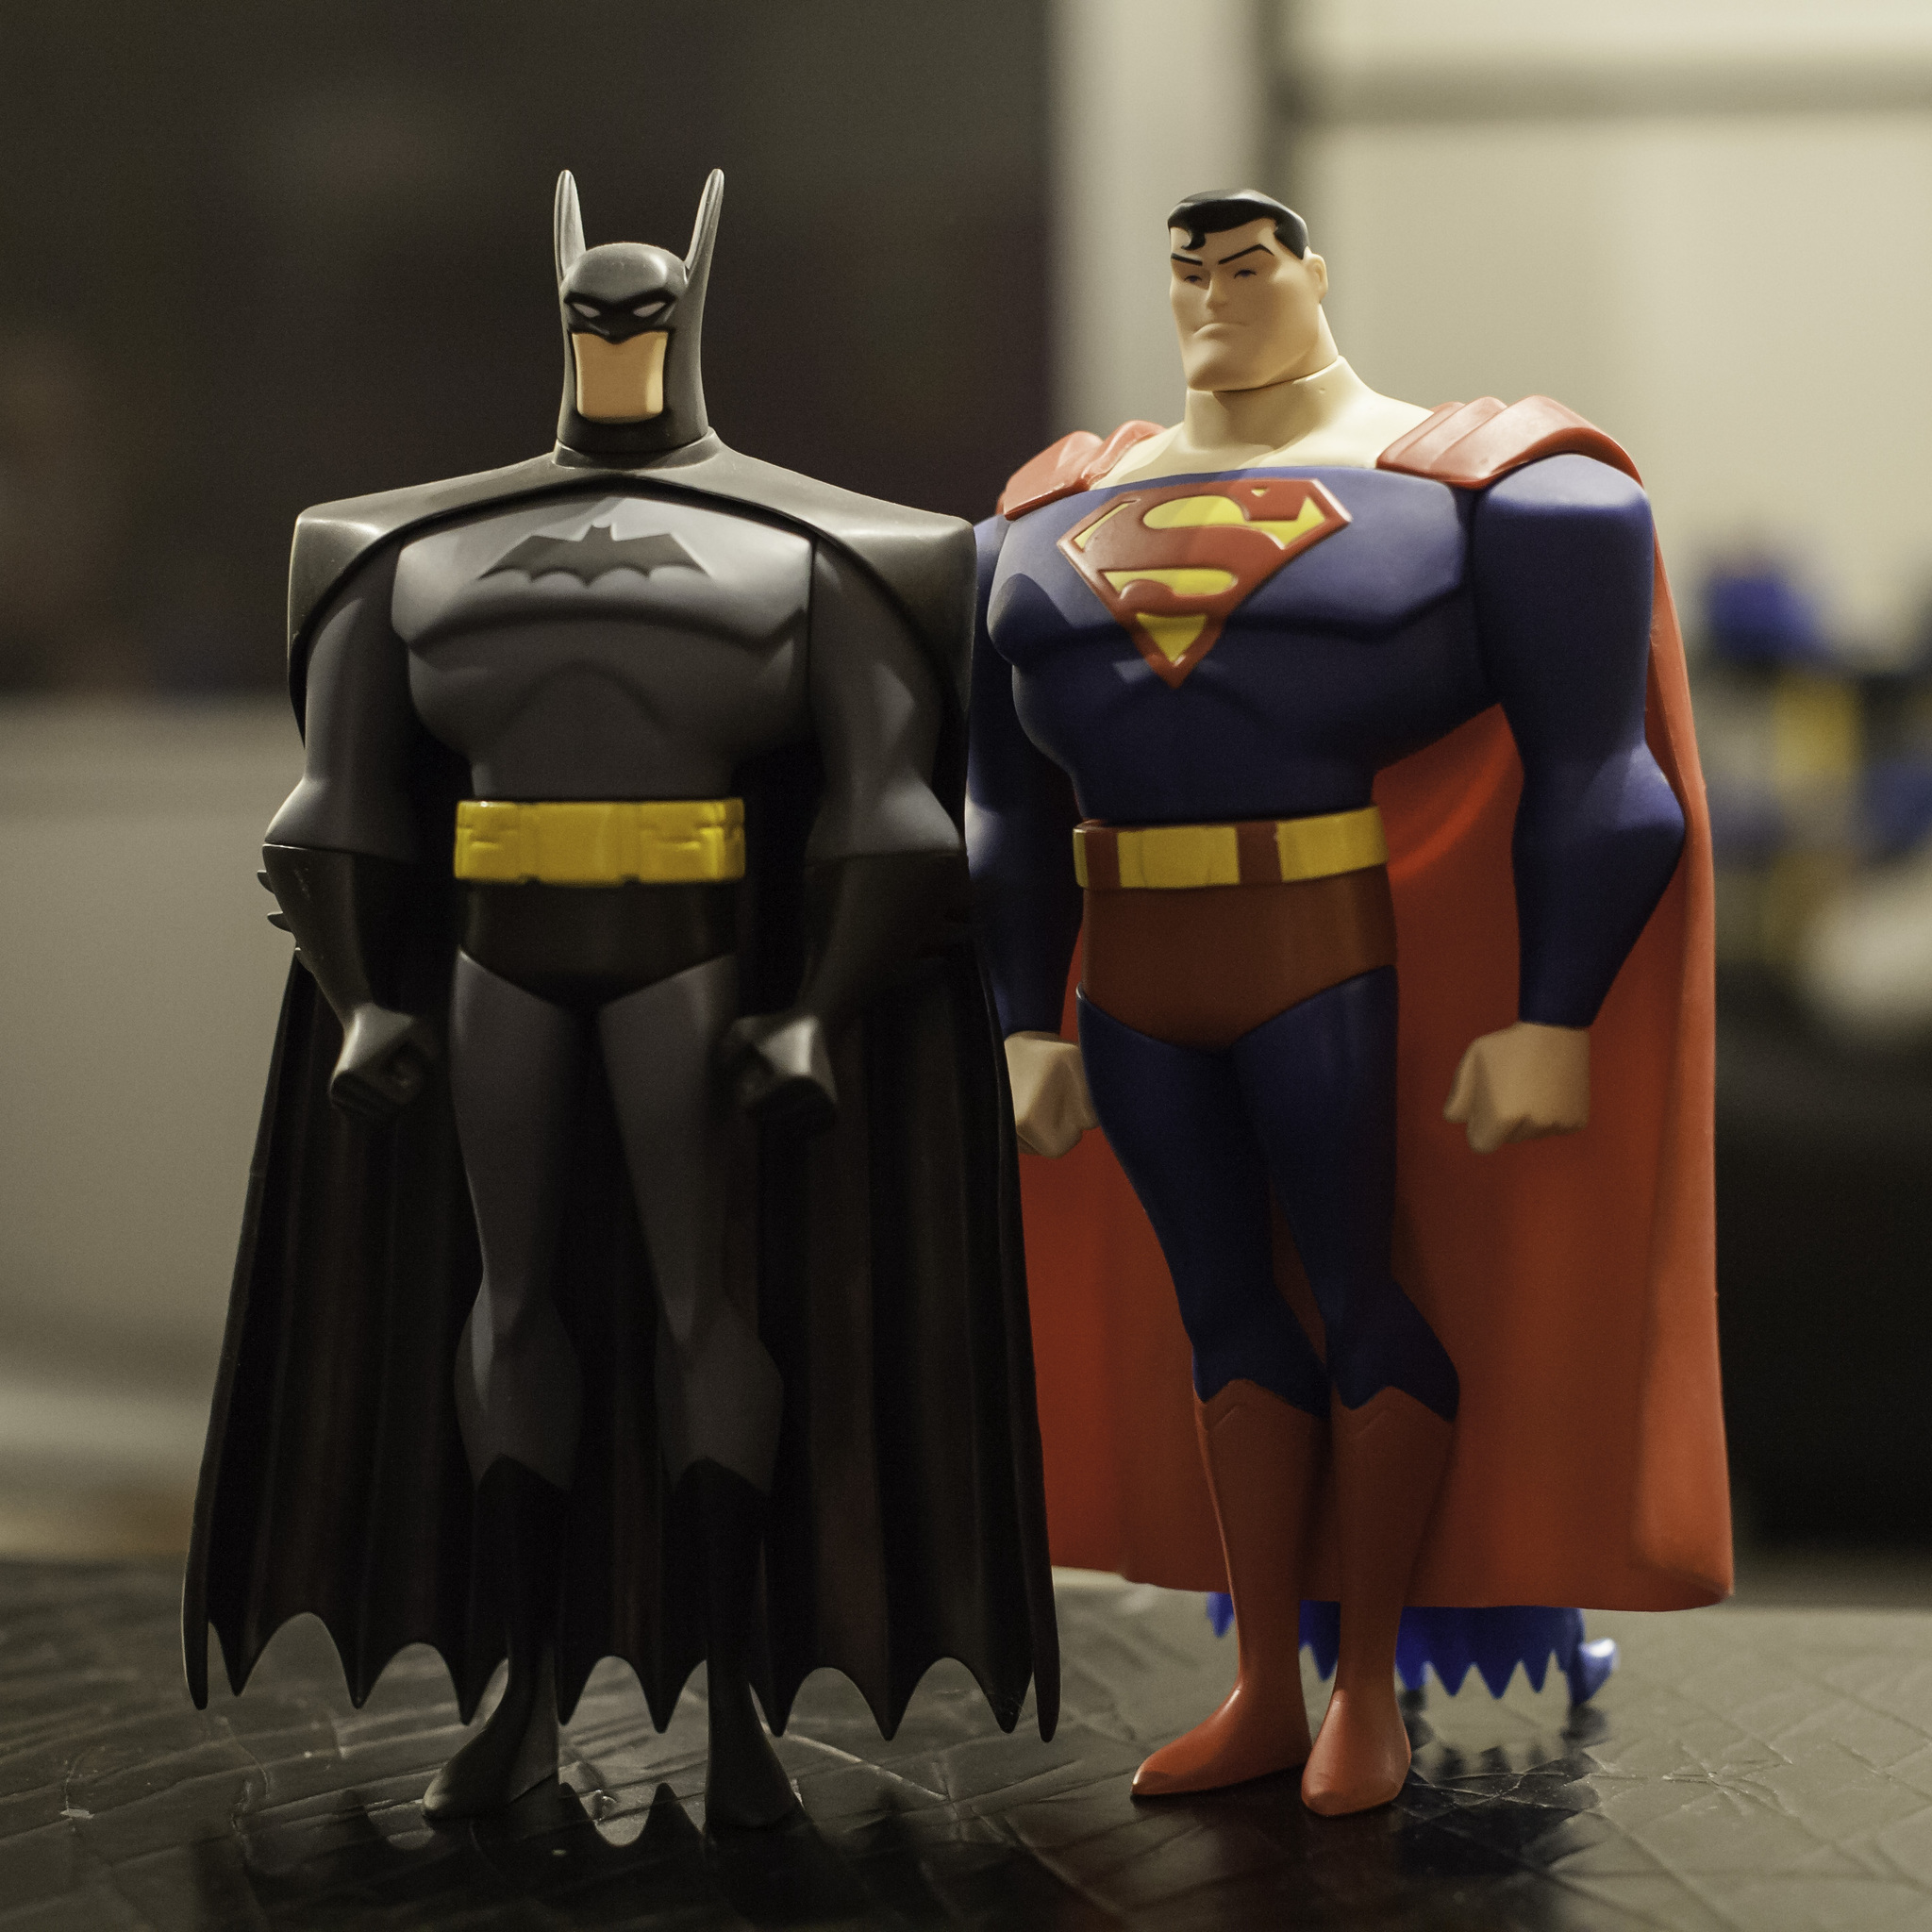 batman-superman-toys-jn.jpg